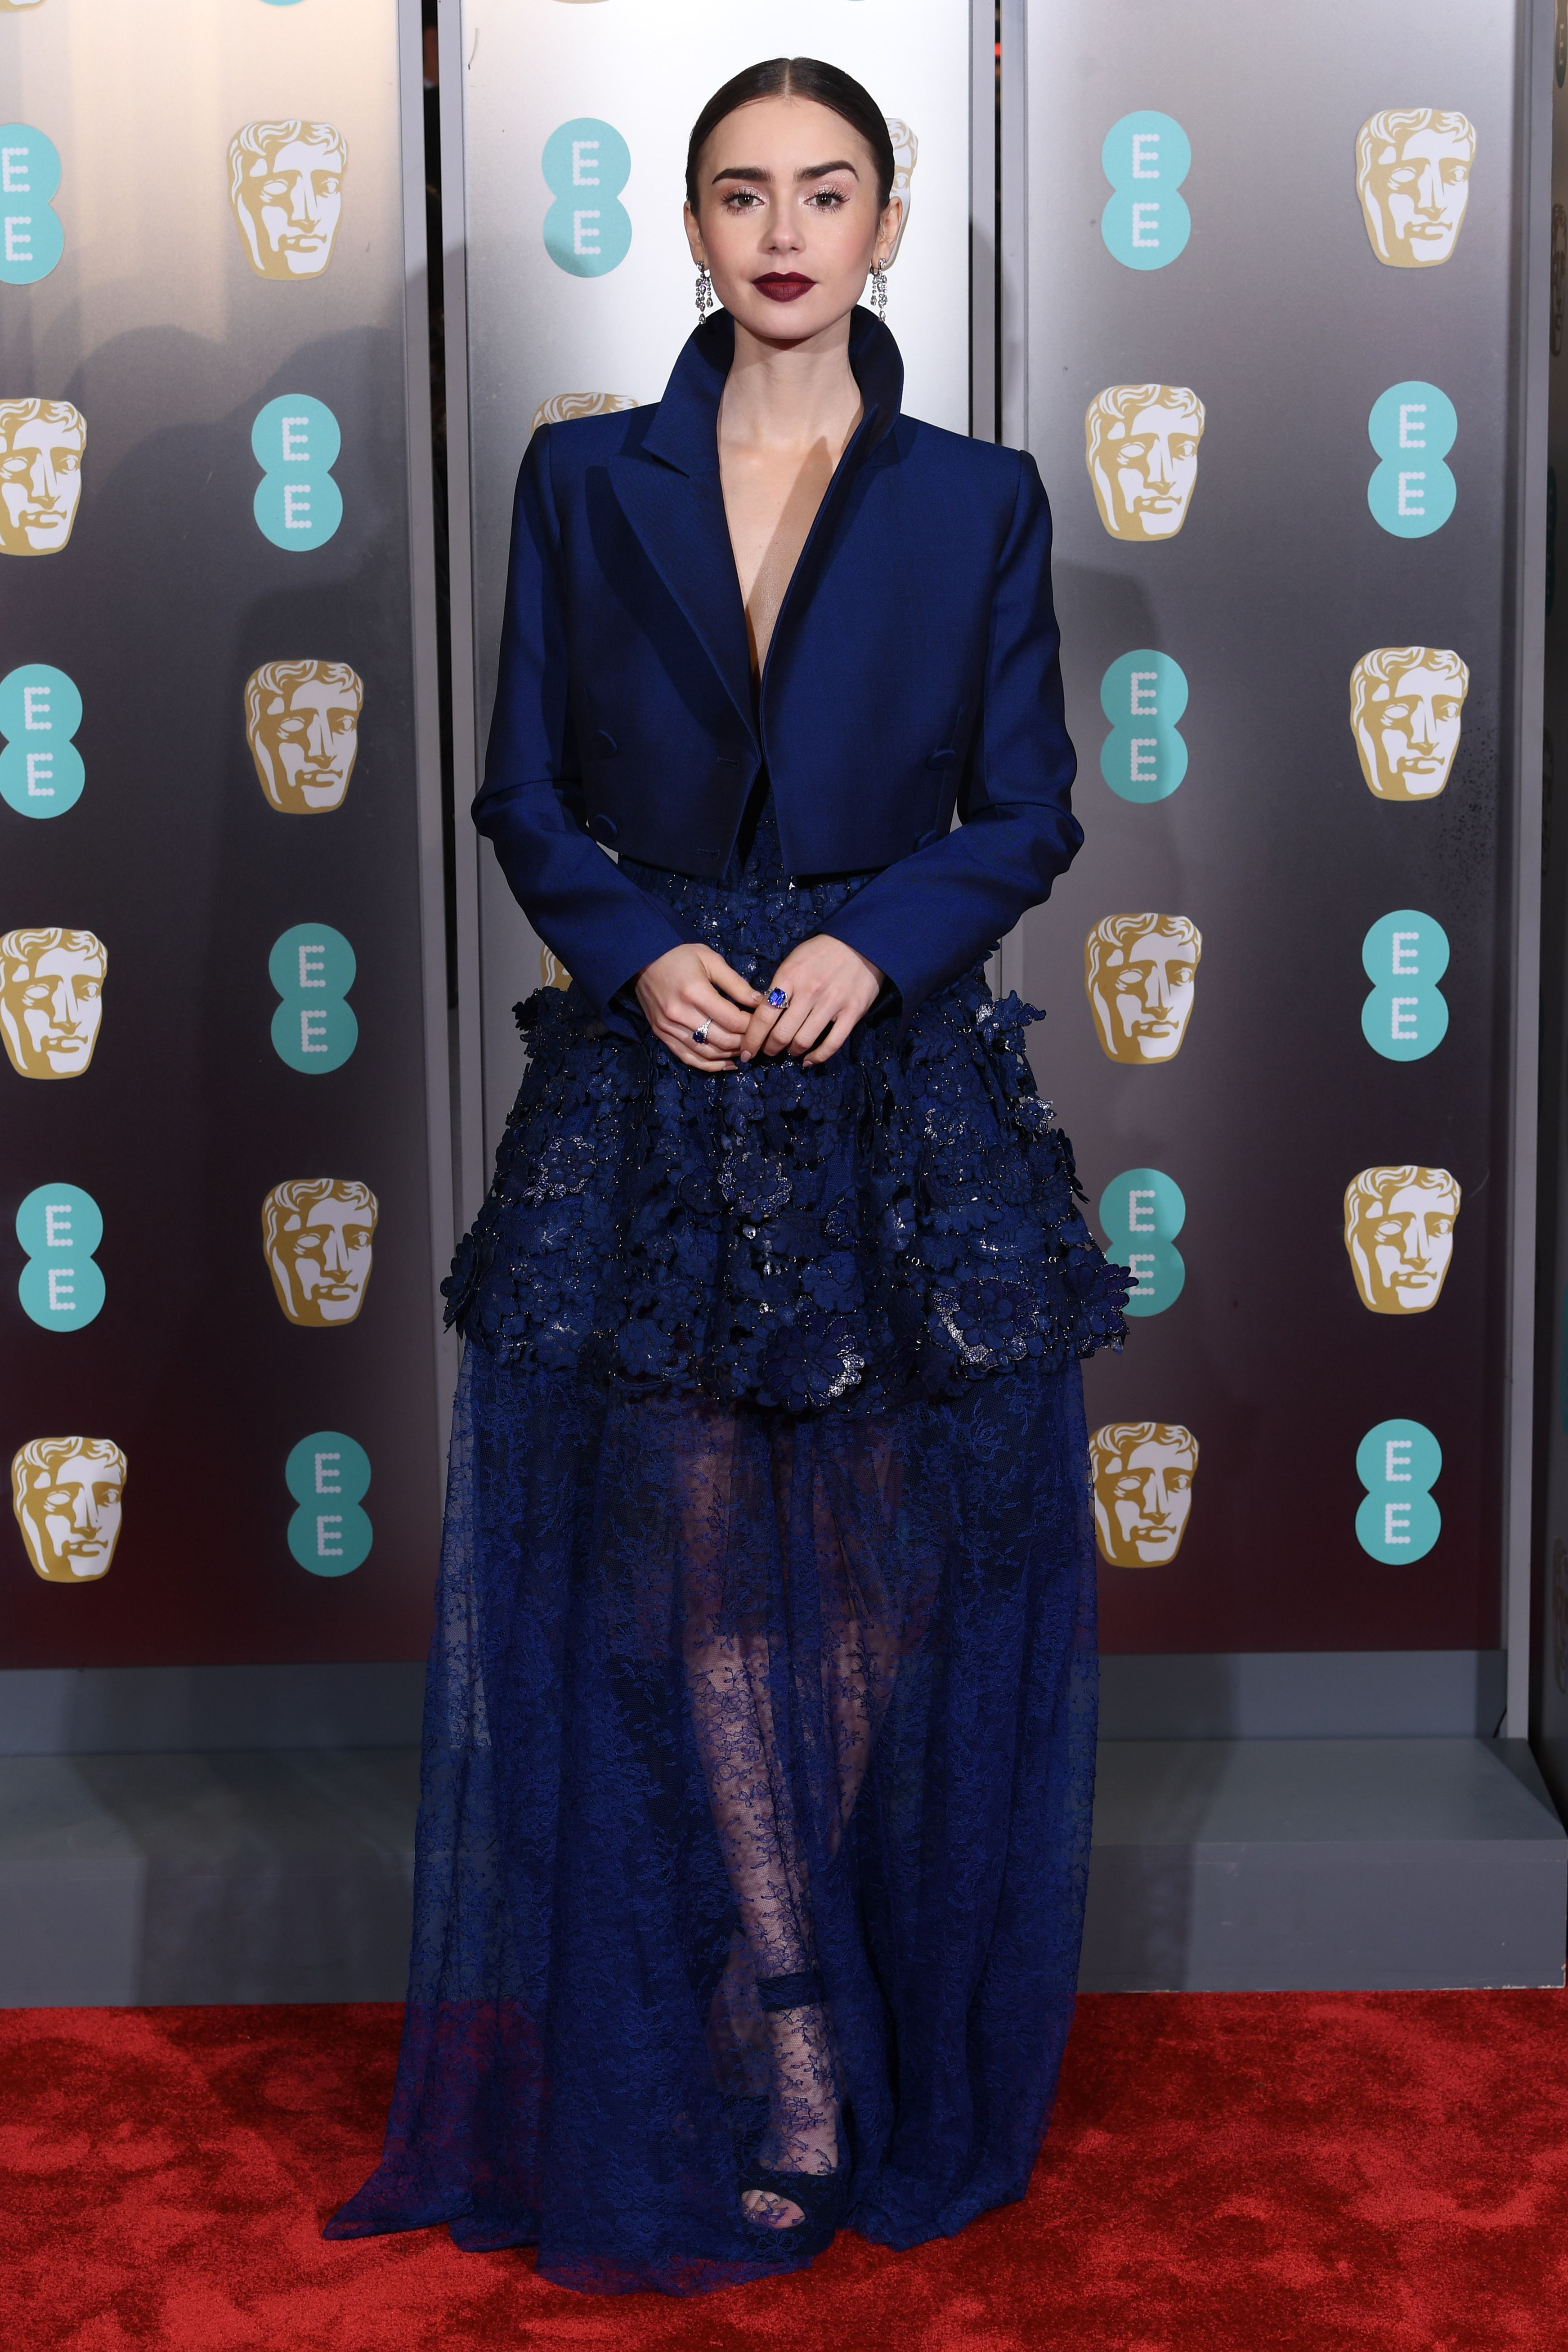 72nd British Academy Film Awards BAFTA 2019